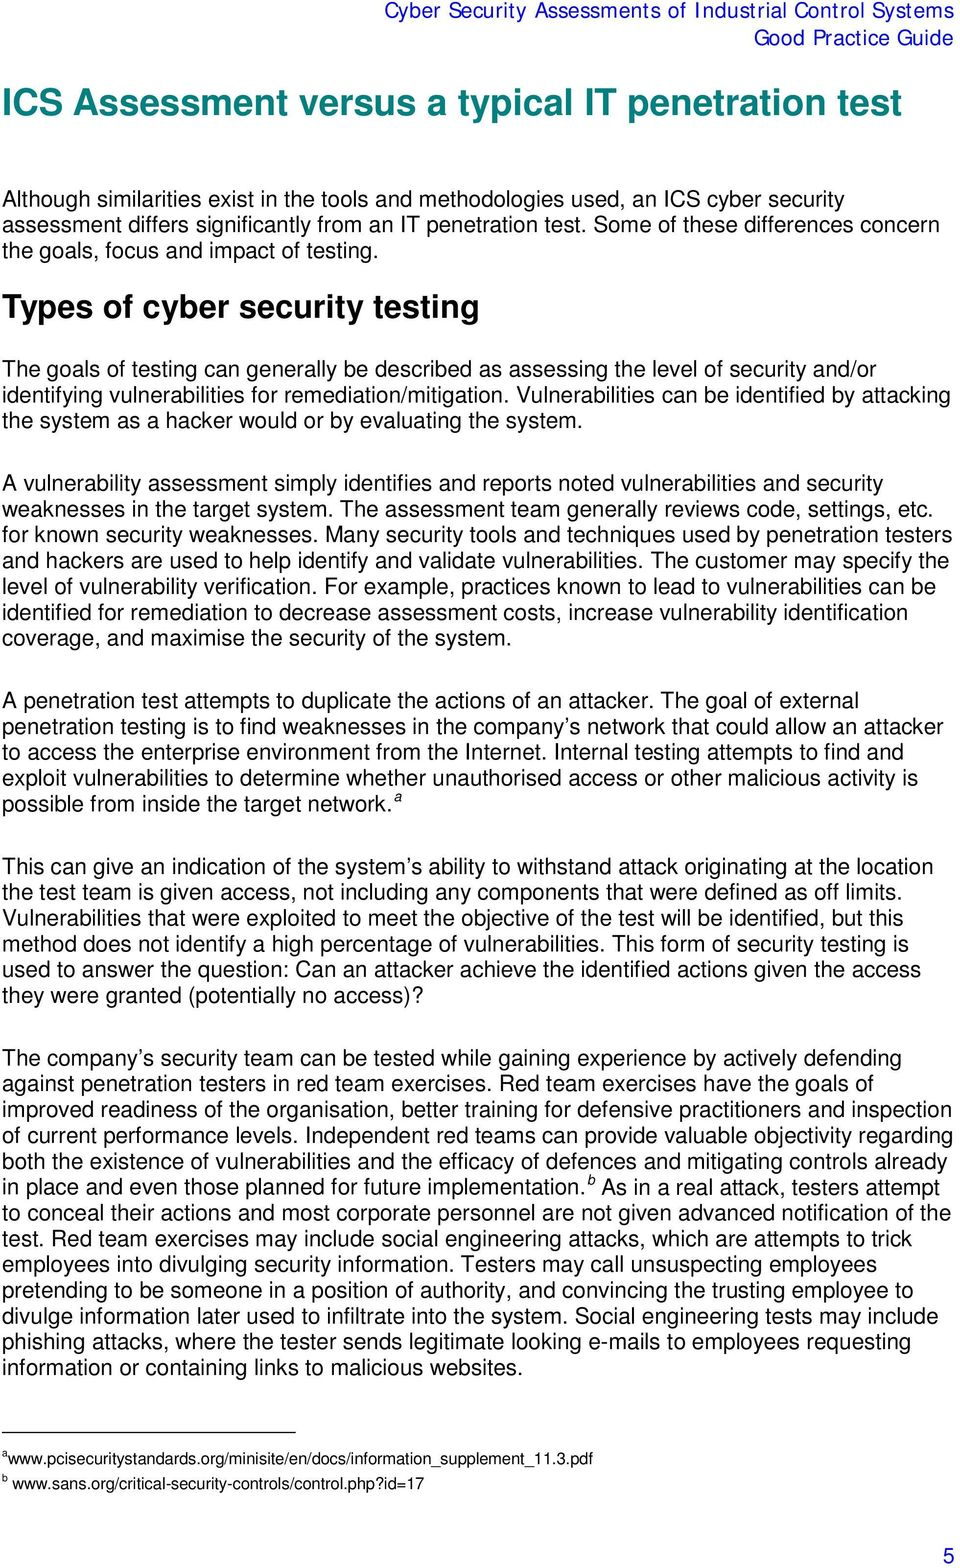 Types of cyber security testing The goals of testing can generally be described as assessing the level of security and/or identifying vulnerabilities for remediation/mitigation.